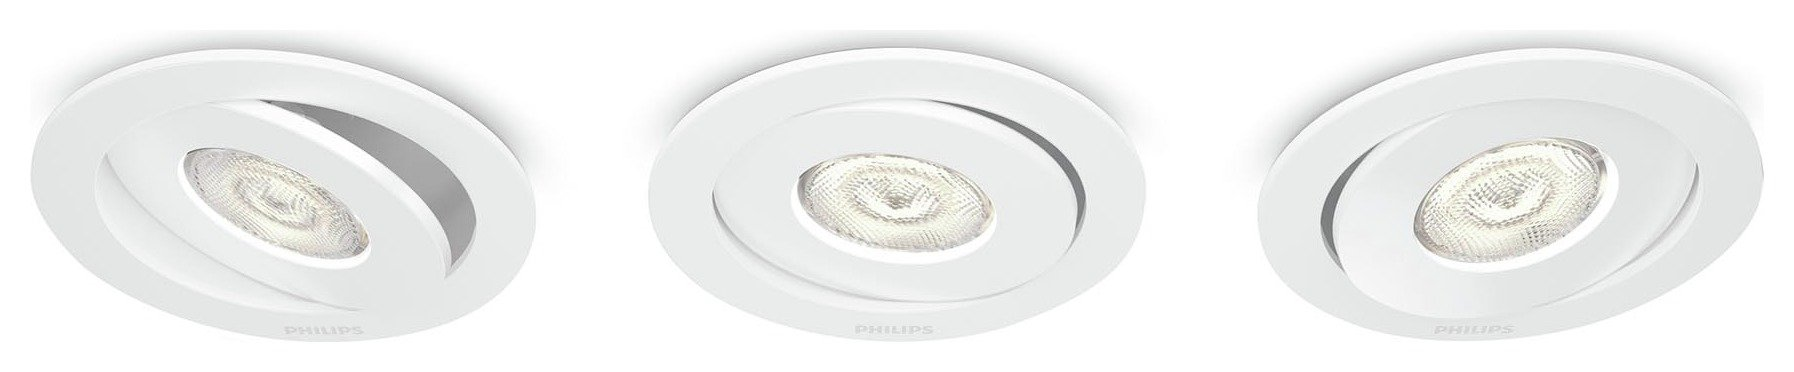 Philips - Asterope 45w White Recessed SELV Light - 3 Pack